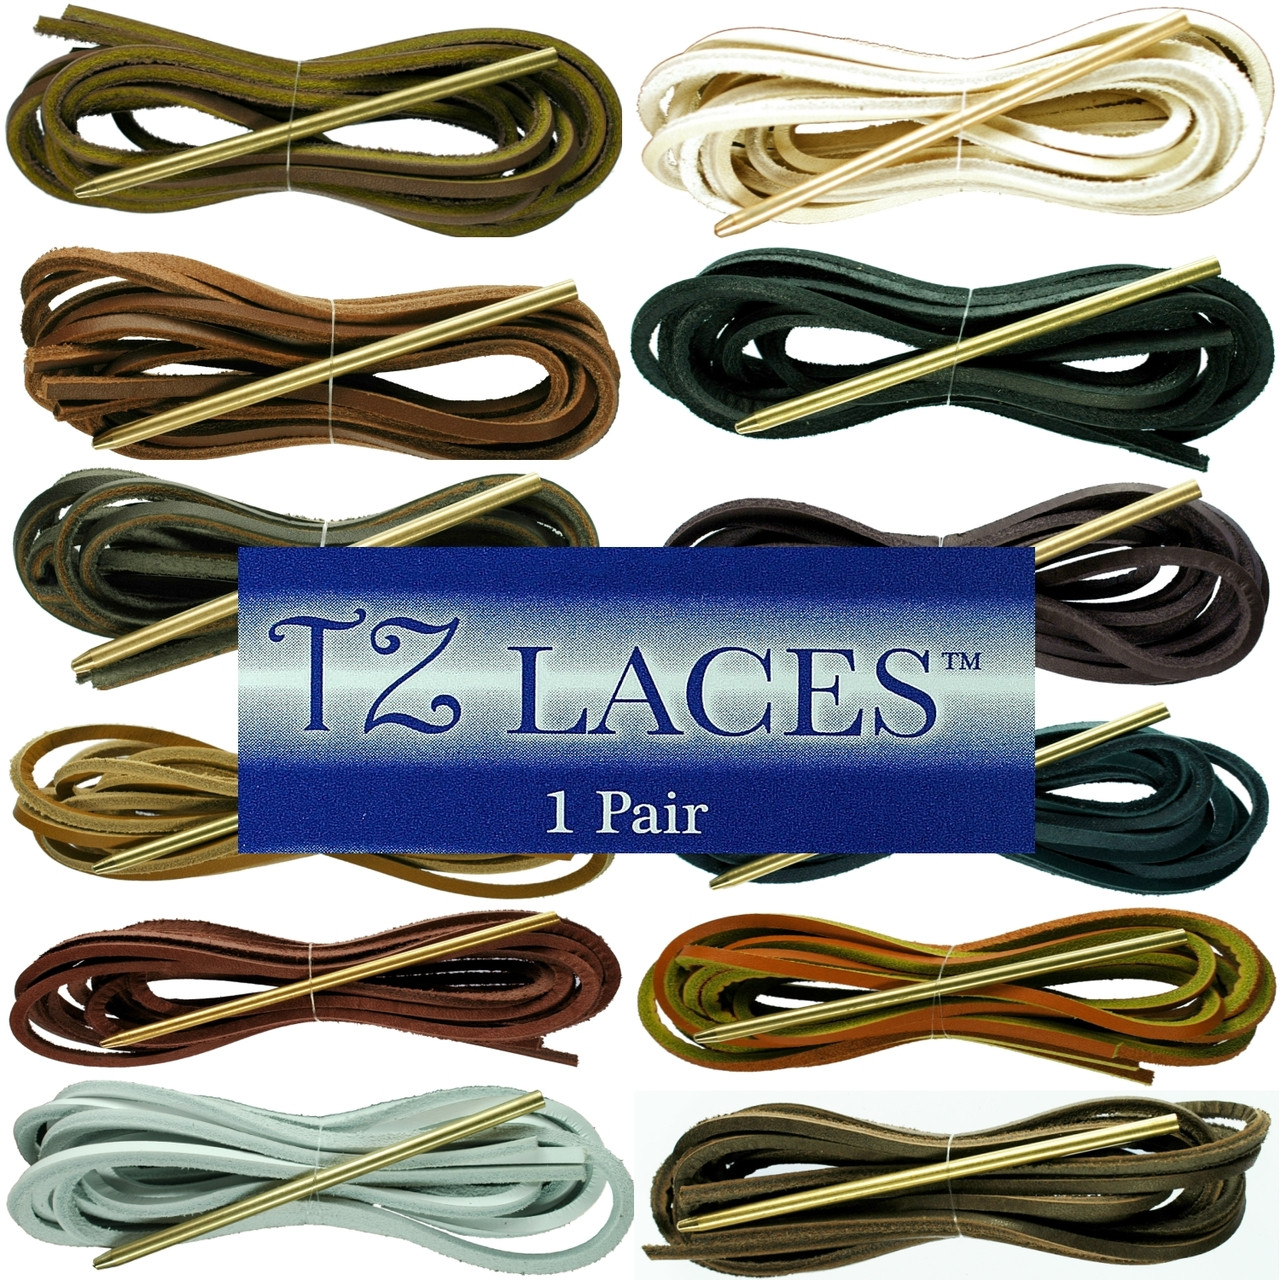 09bb83a70ac2 Replacement Leather Lace Kit For Deck Shoes Includes Needle. Price  £6.70.  Image 1